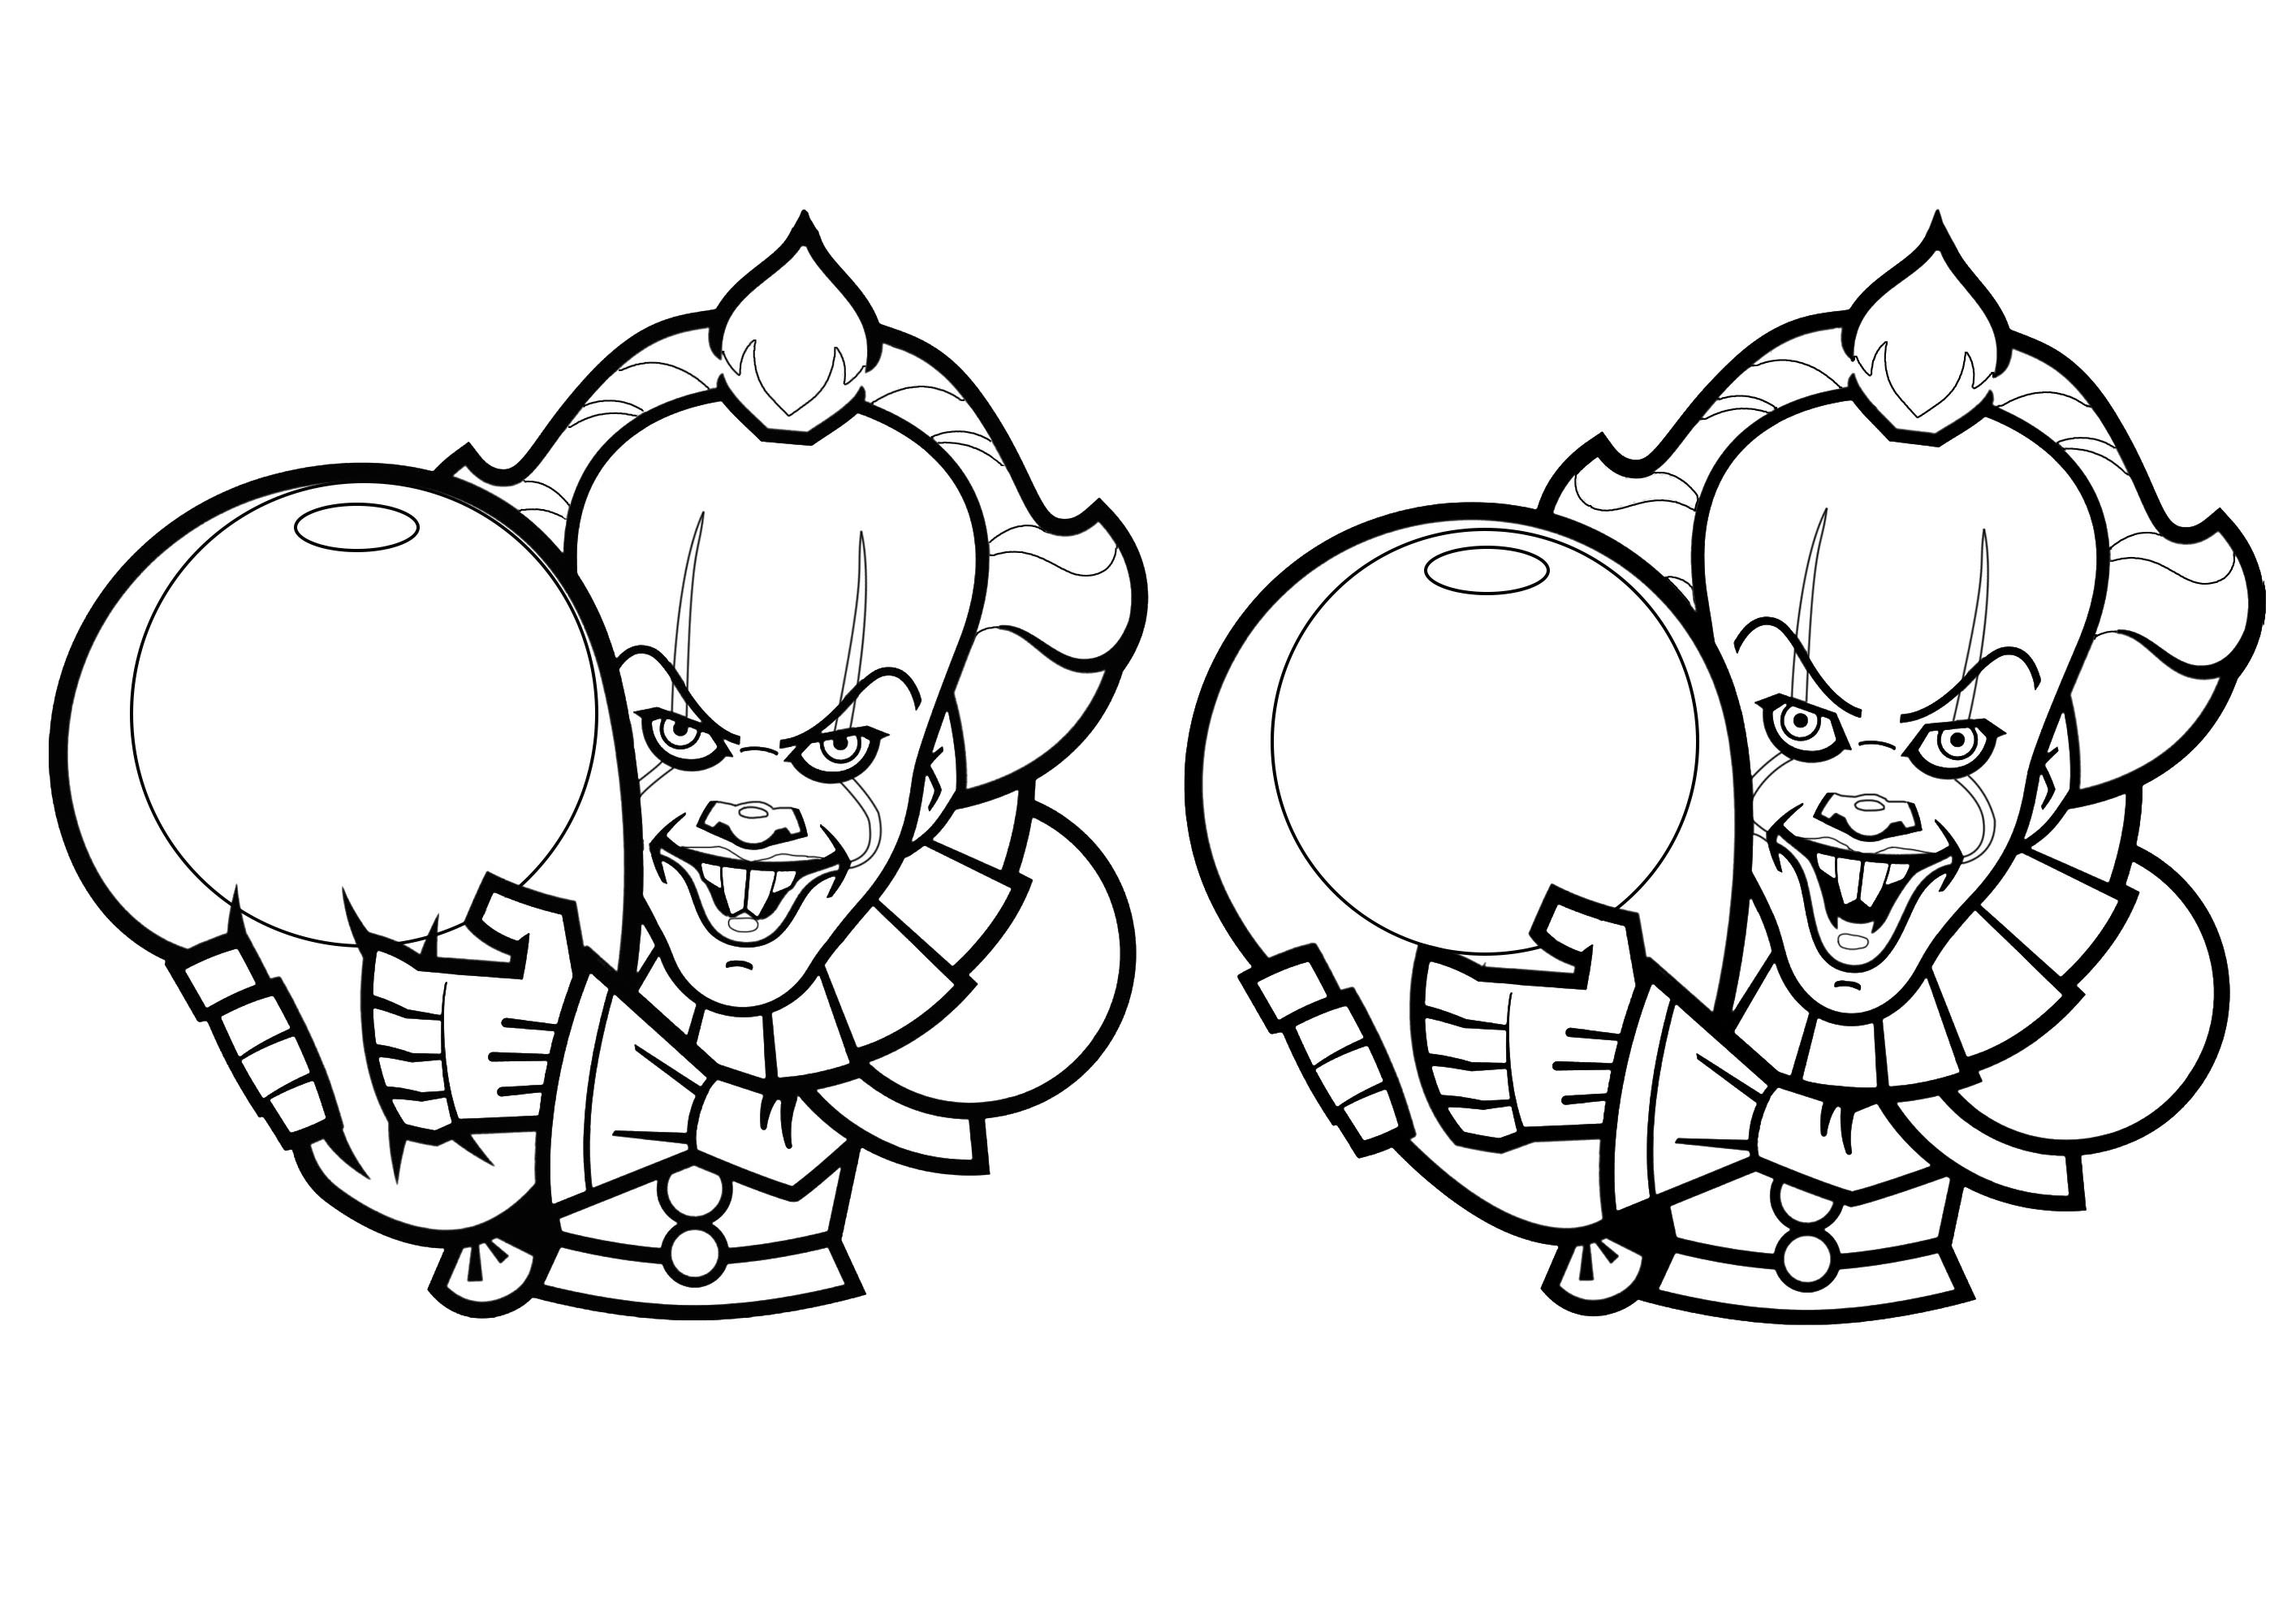 Coloriage Clown Ca.Clown Grippe Sous De Ca Halloween Coloriages Difficiles